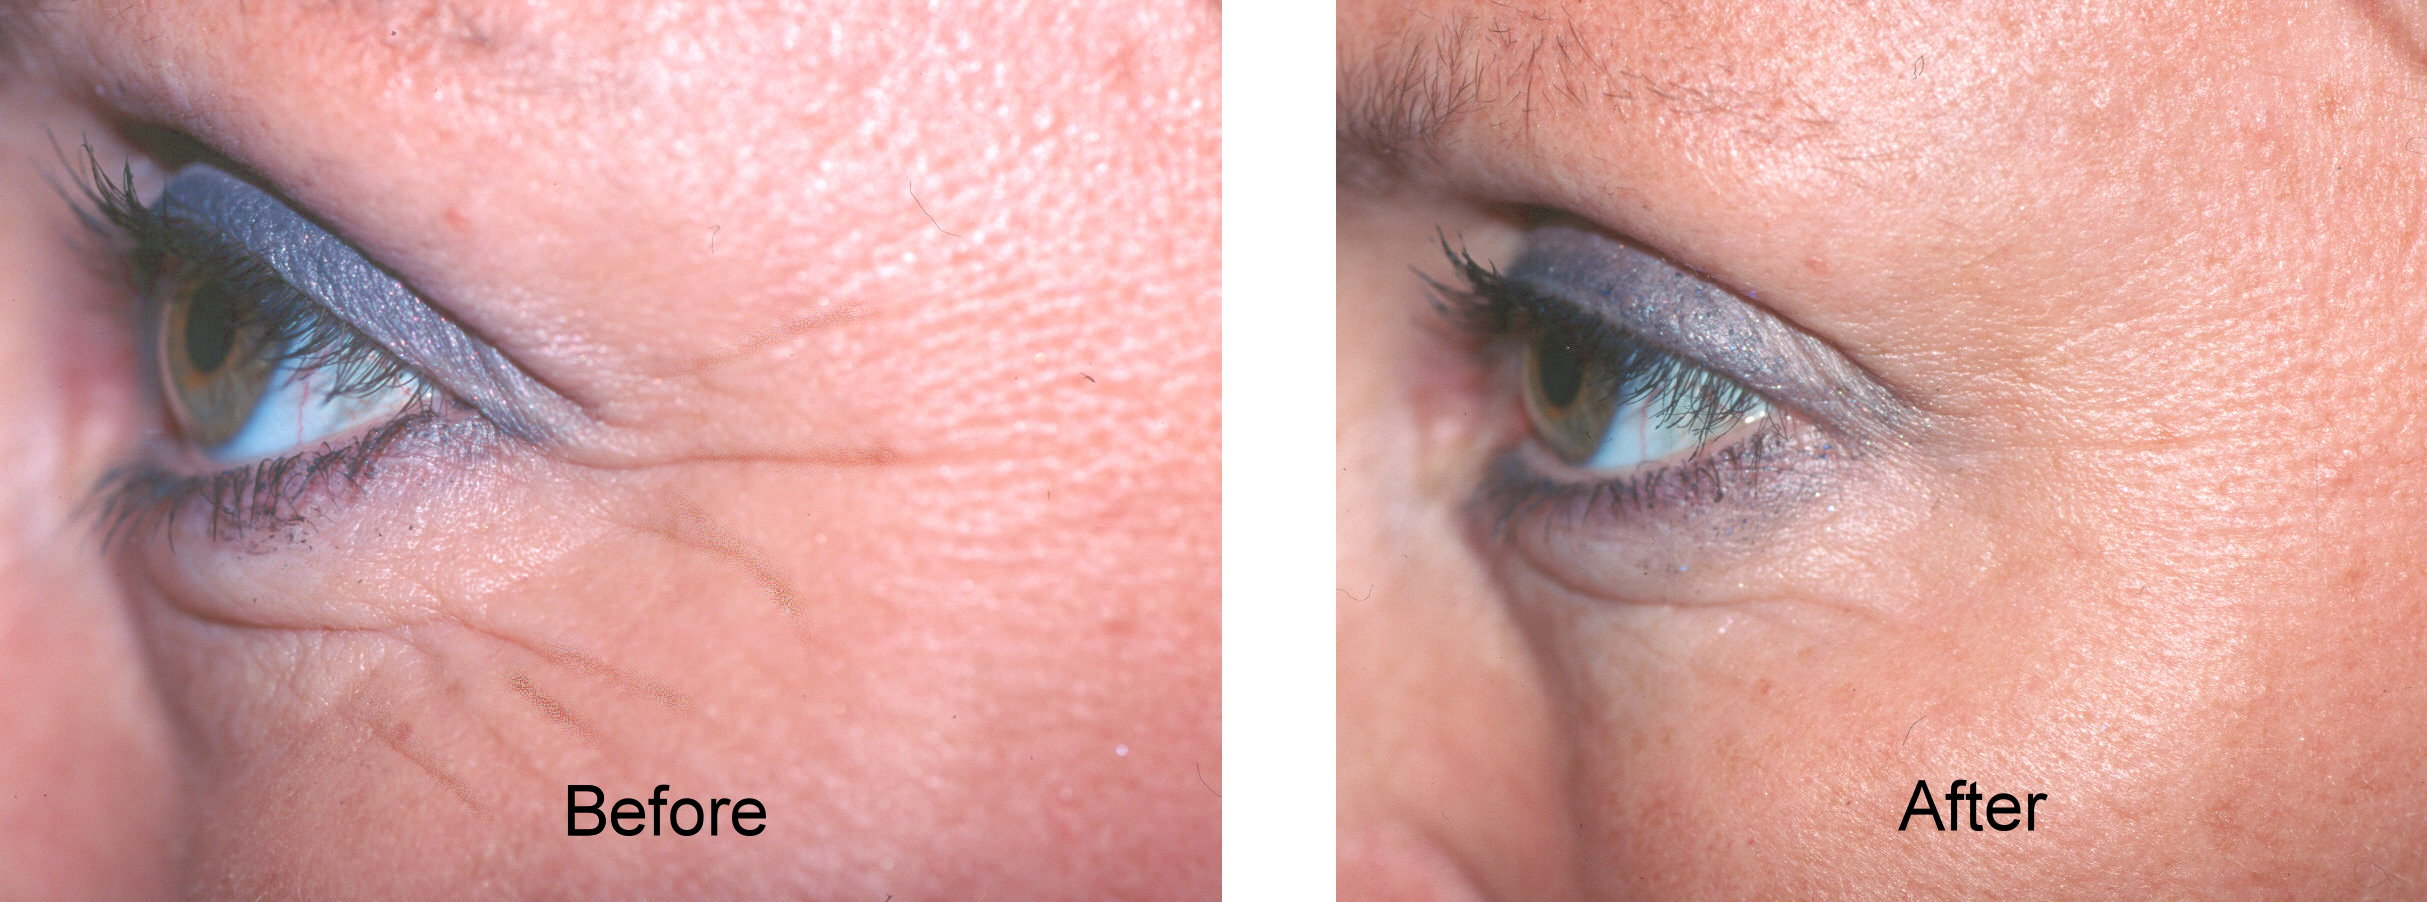 Botox Dysport crows feet lines